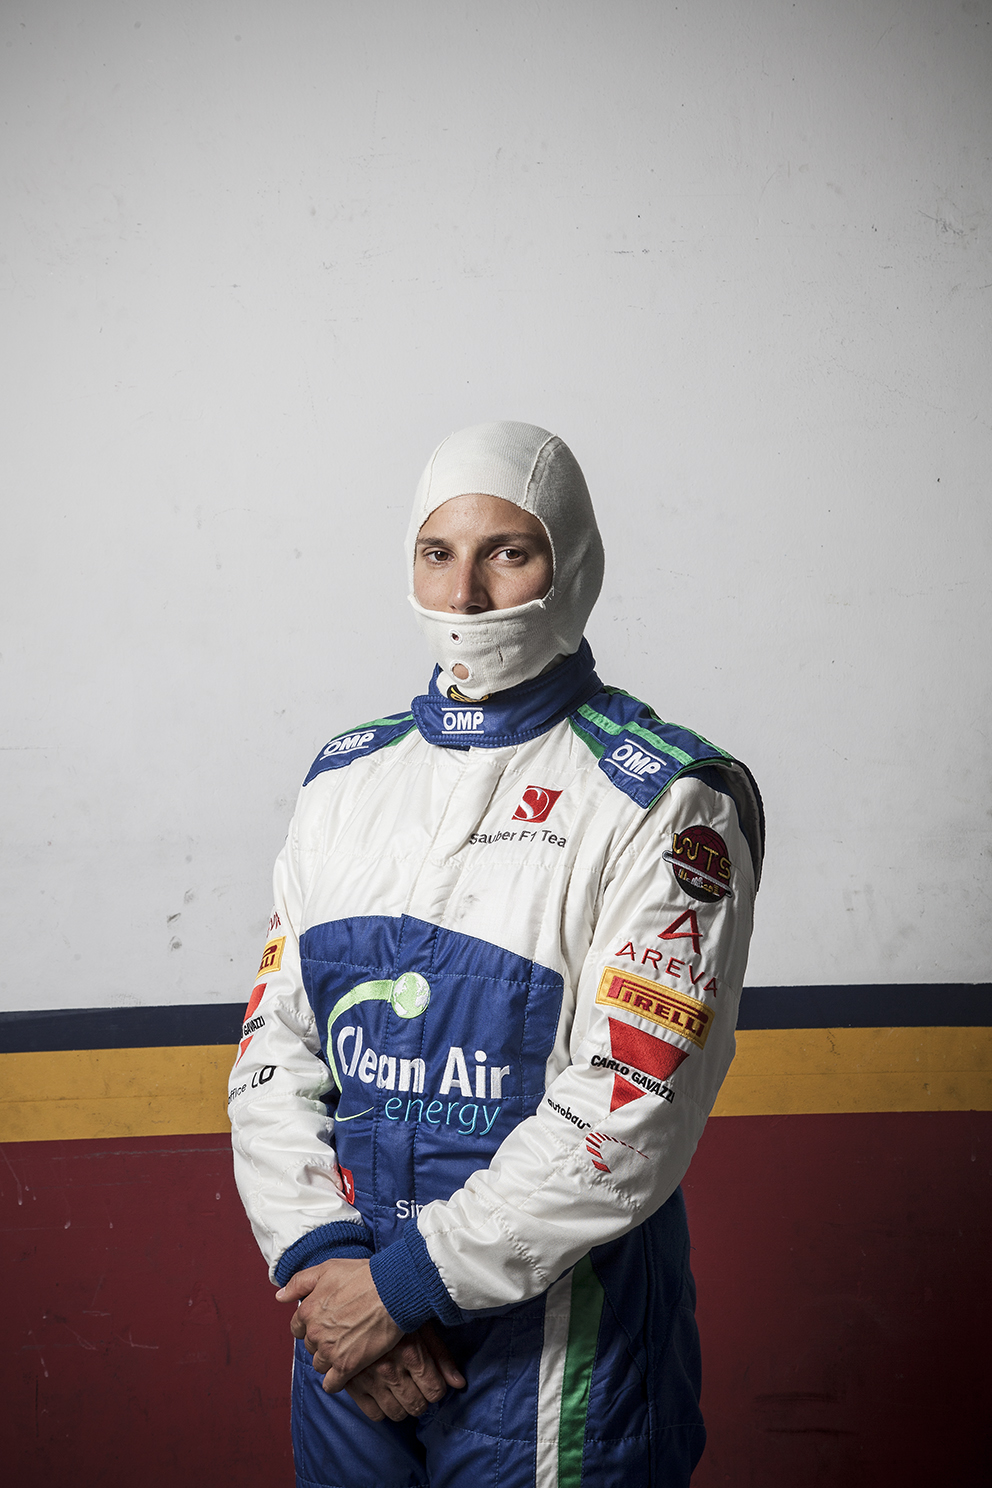 Female racing driver Simona di Silvestro testing in Spain with the Sauber Formula One Team